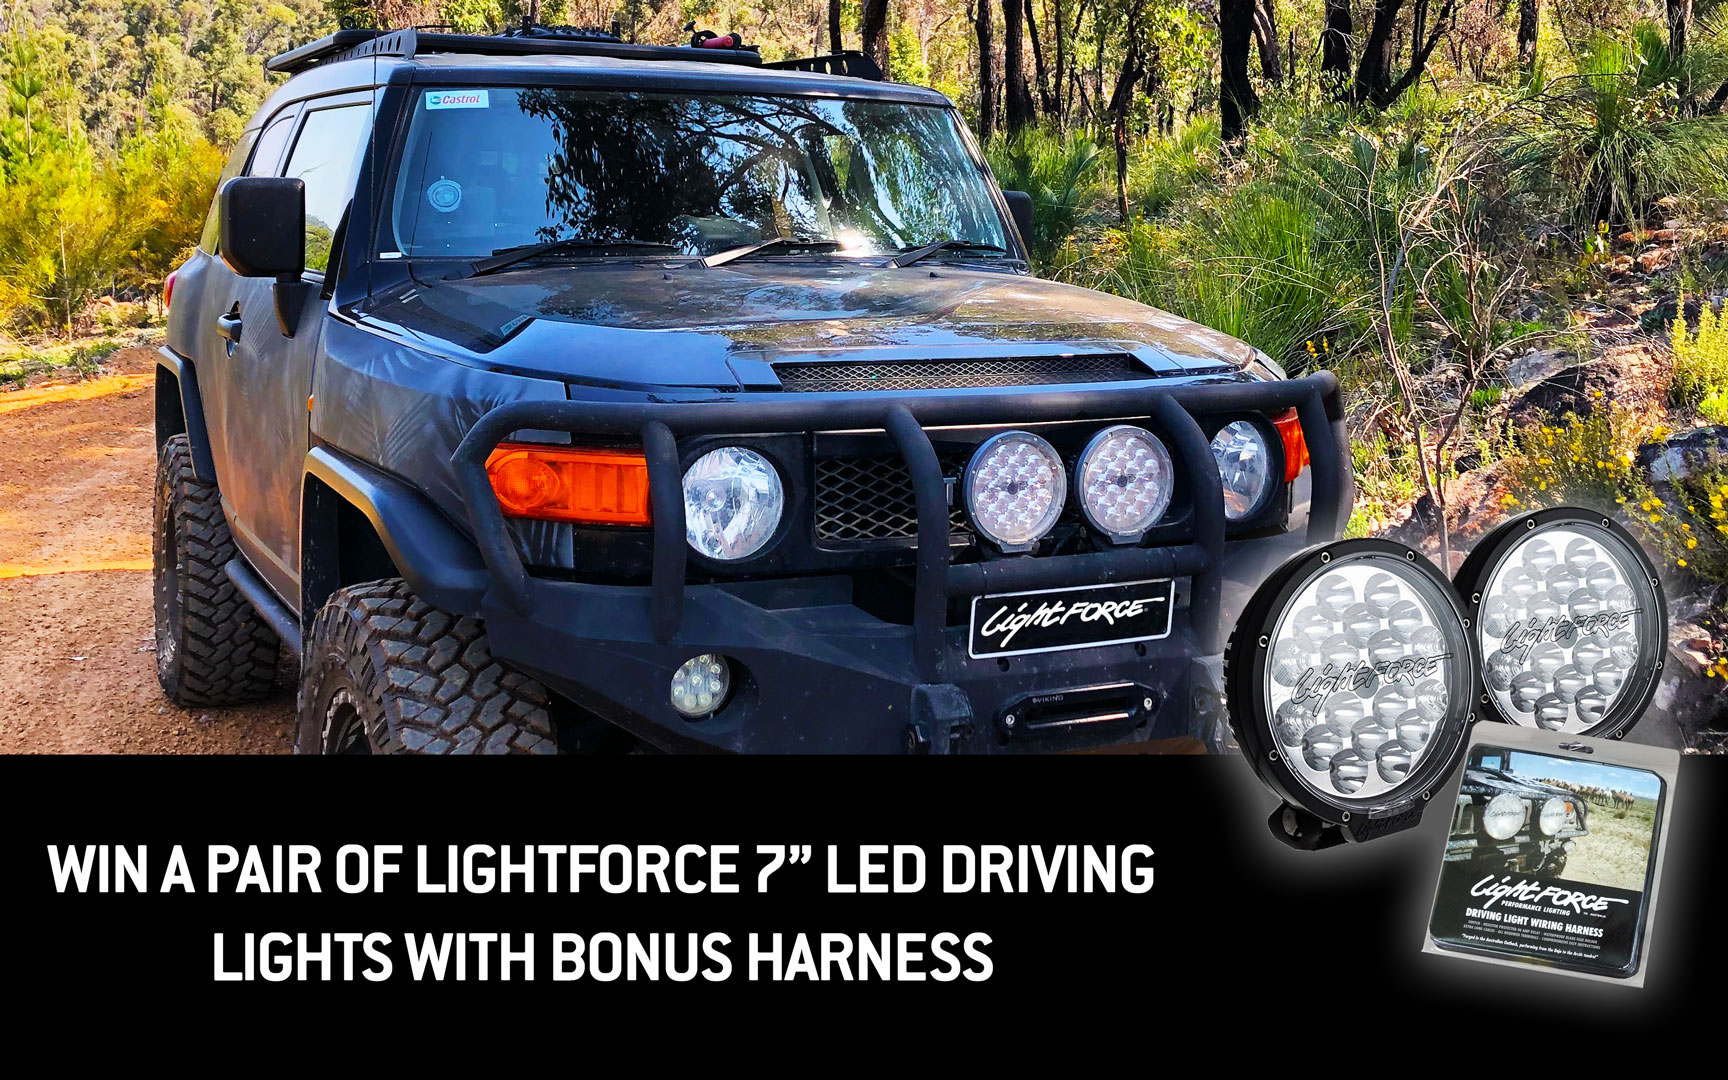 Lightforce 7 Inch LED Driving Lights Giveaway